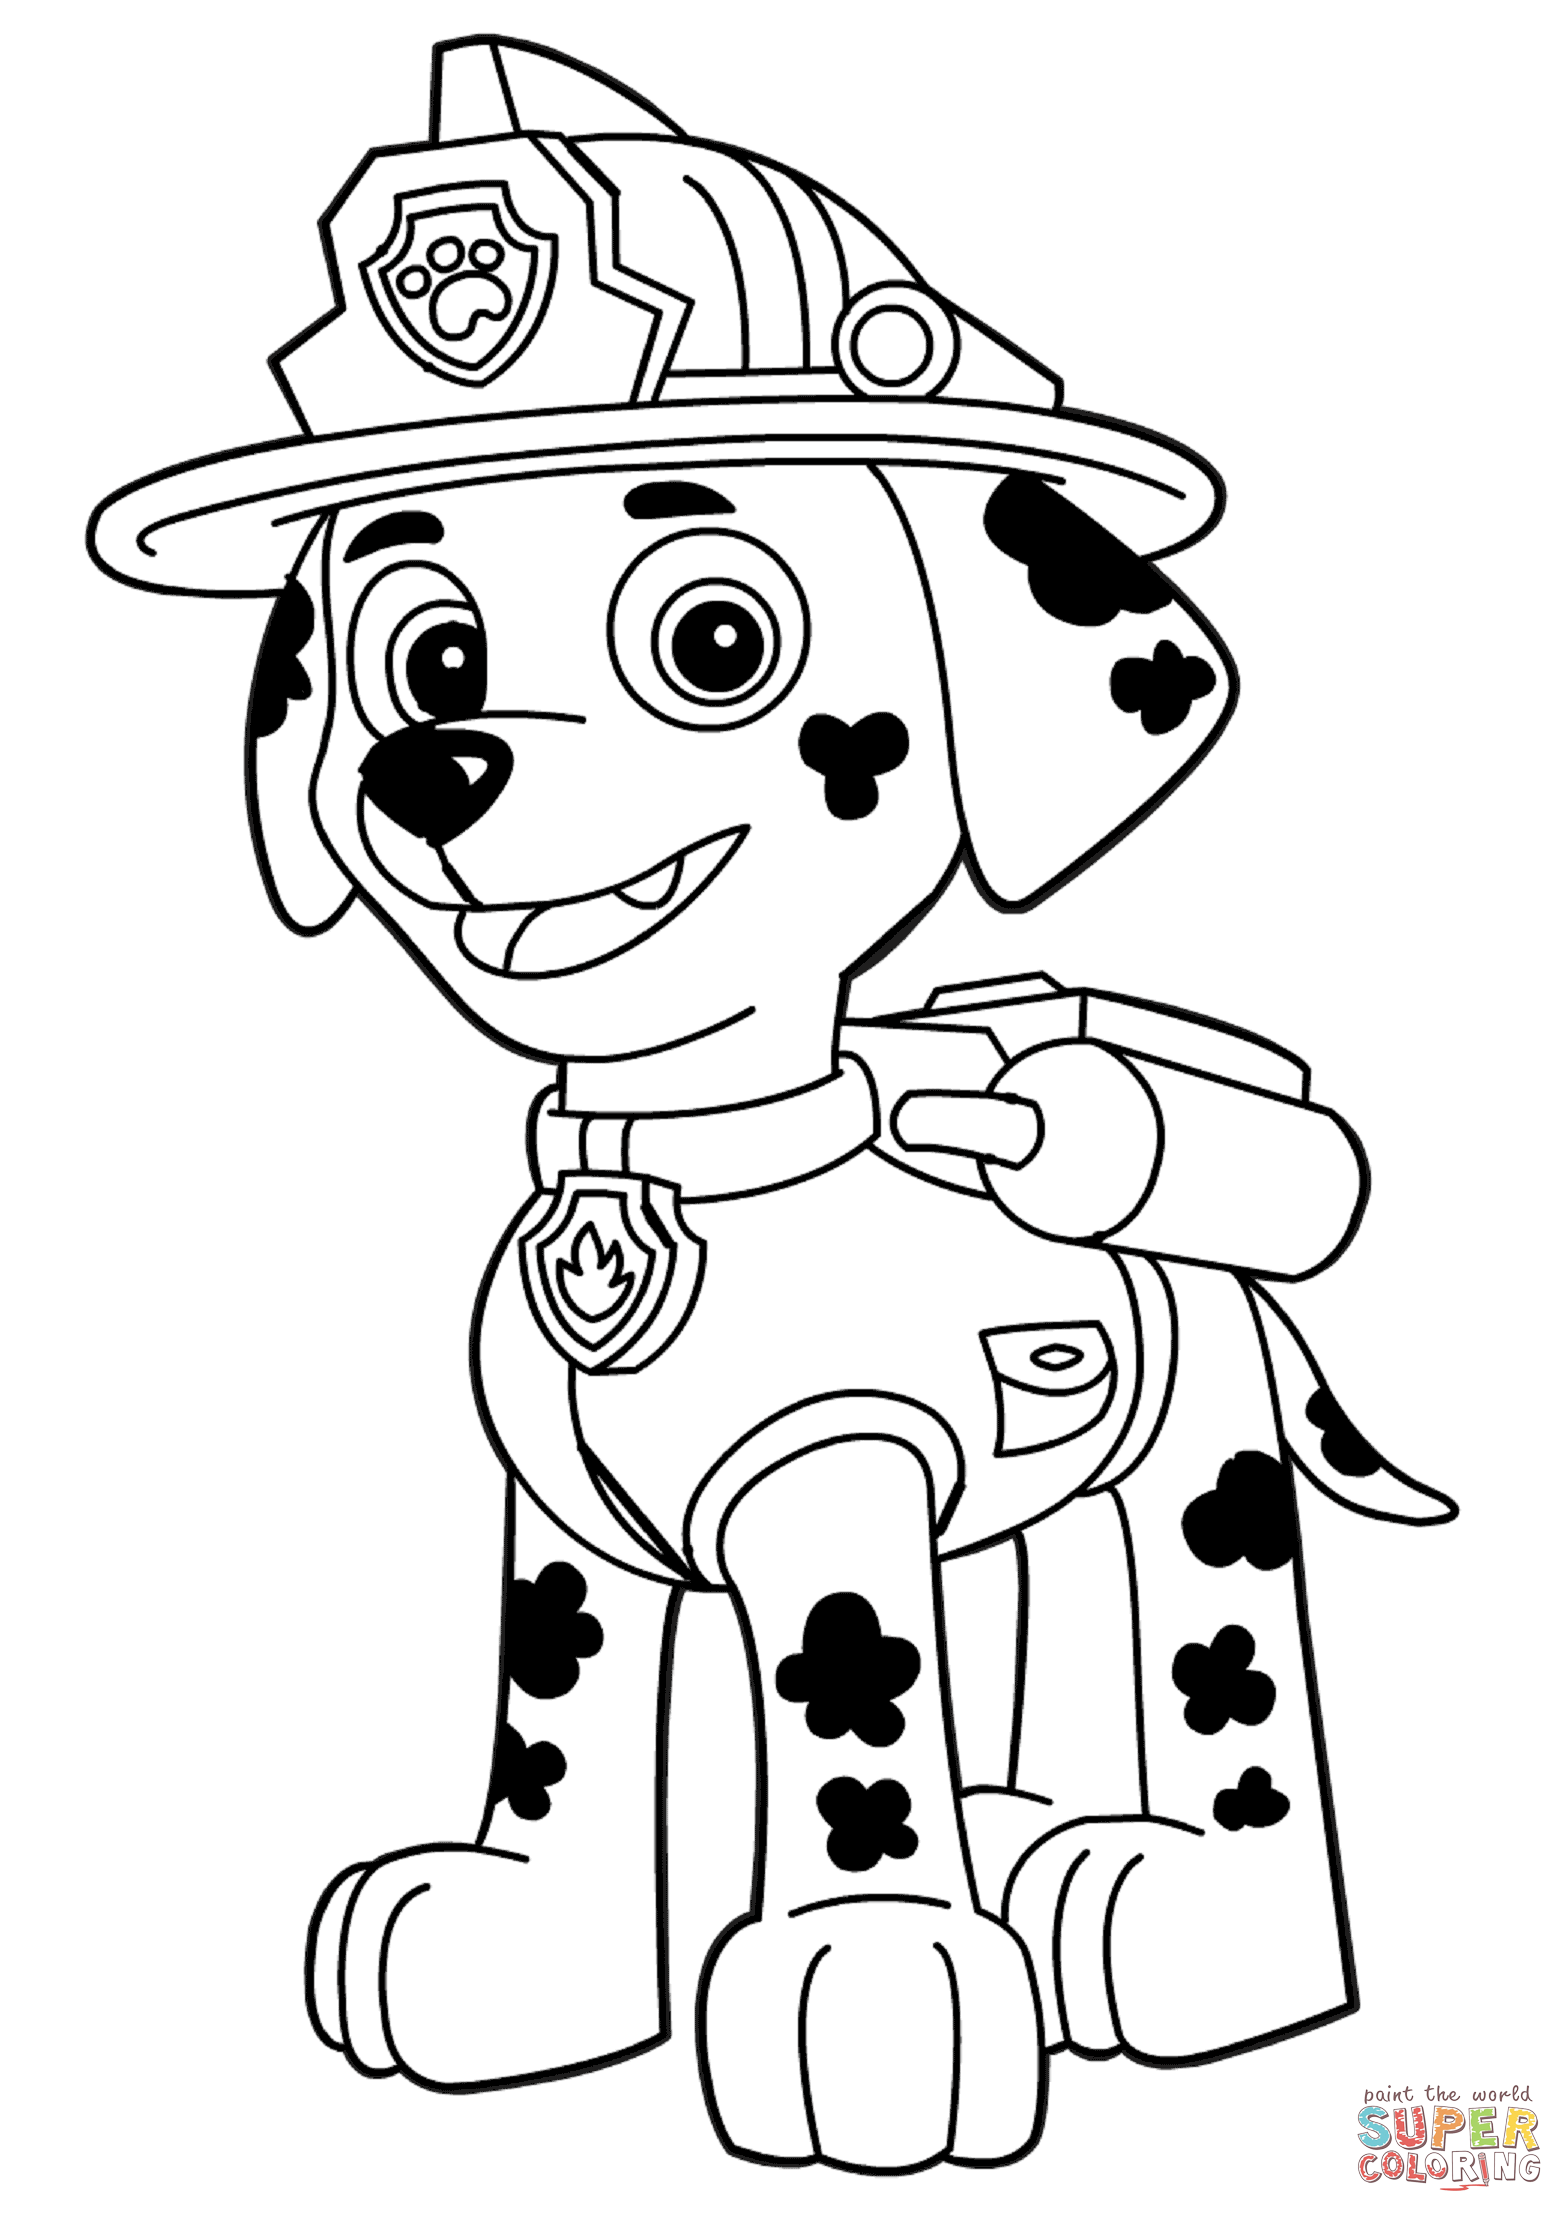 Paw Patrol Marshall Coloring Page Free Printable Coloring Pages